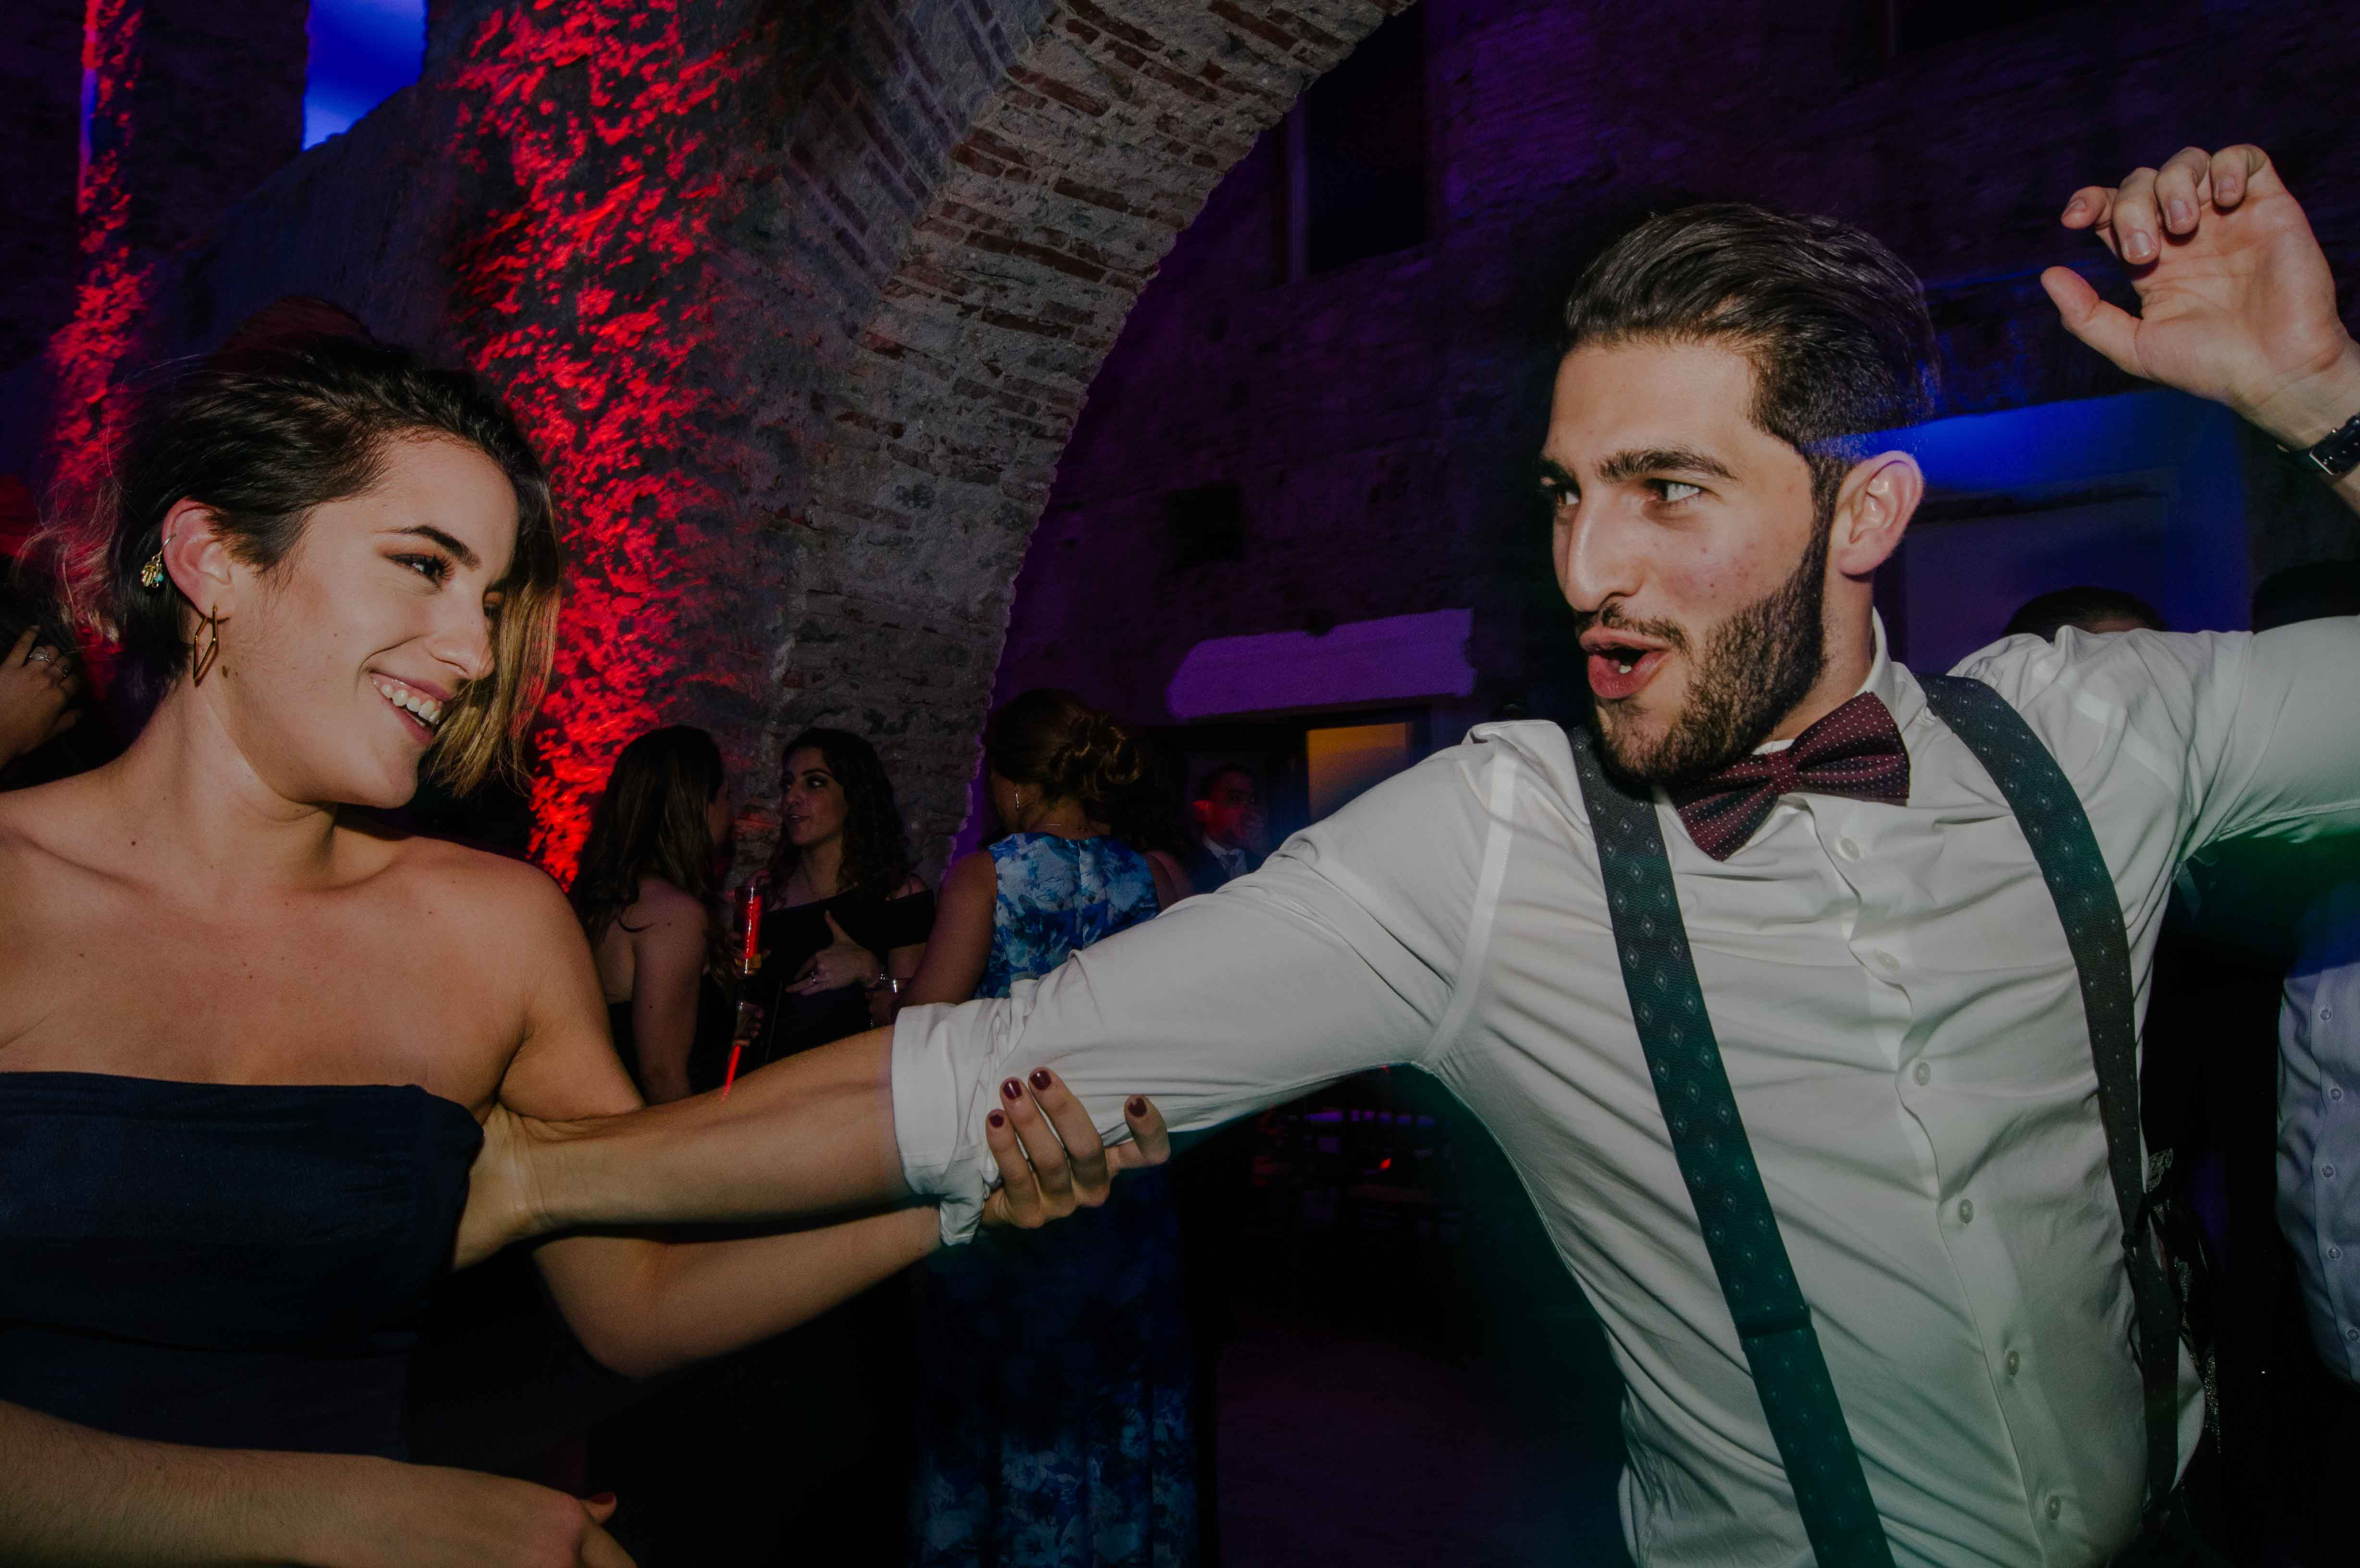 Man with suspenders and bowtie dancing with lady in nocturnal ambiance